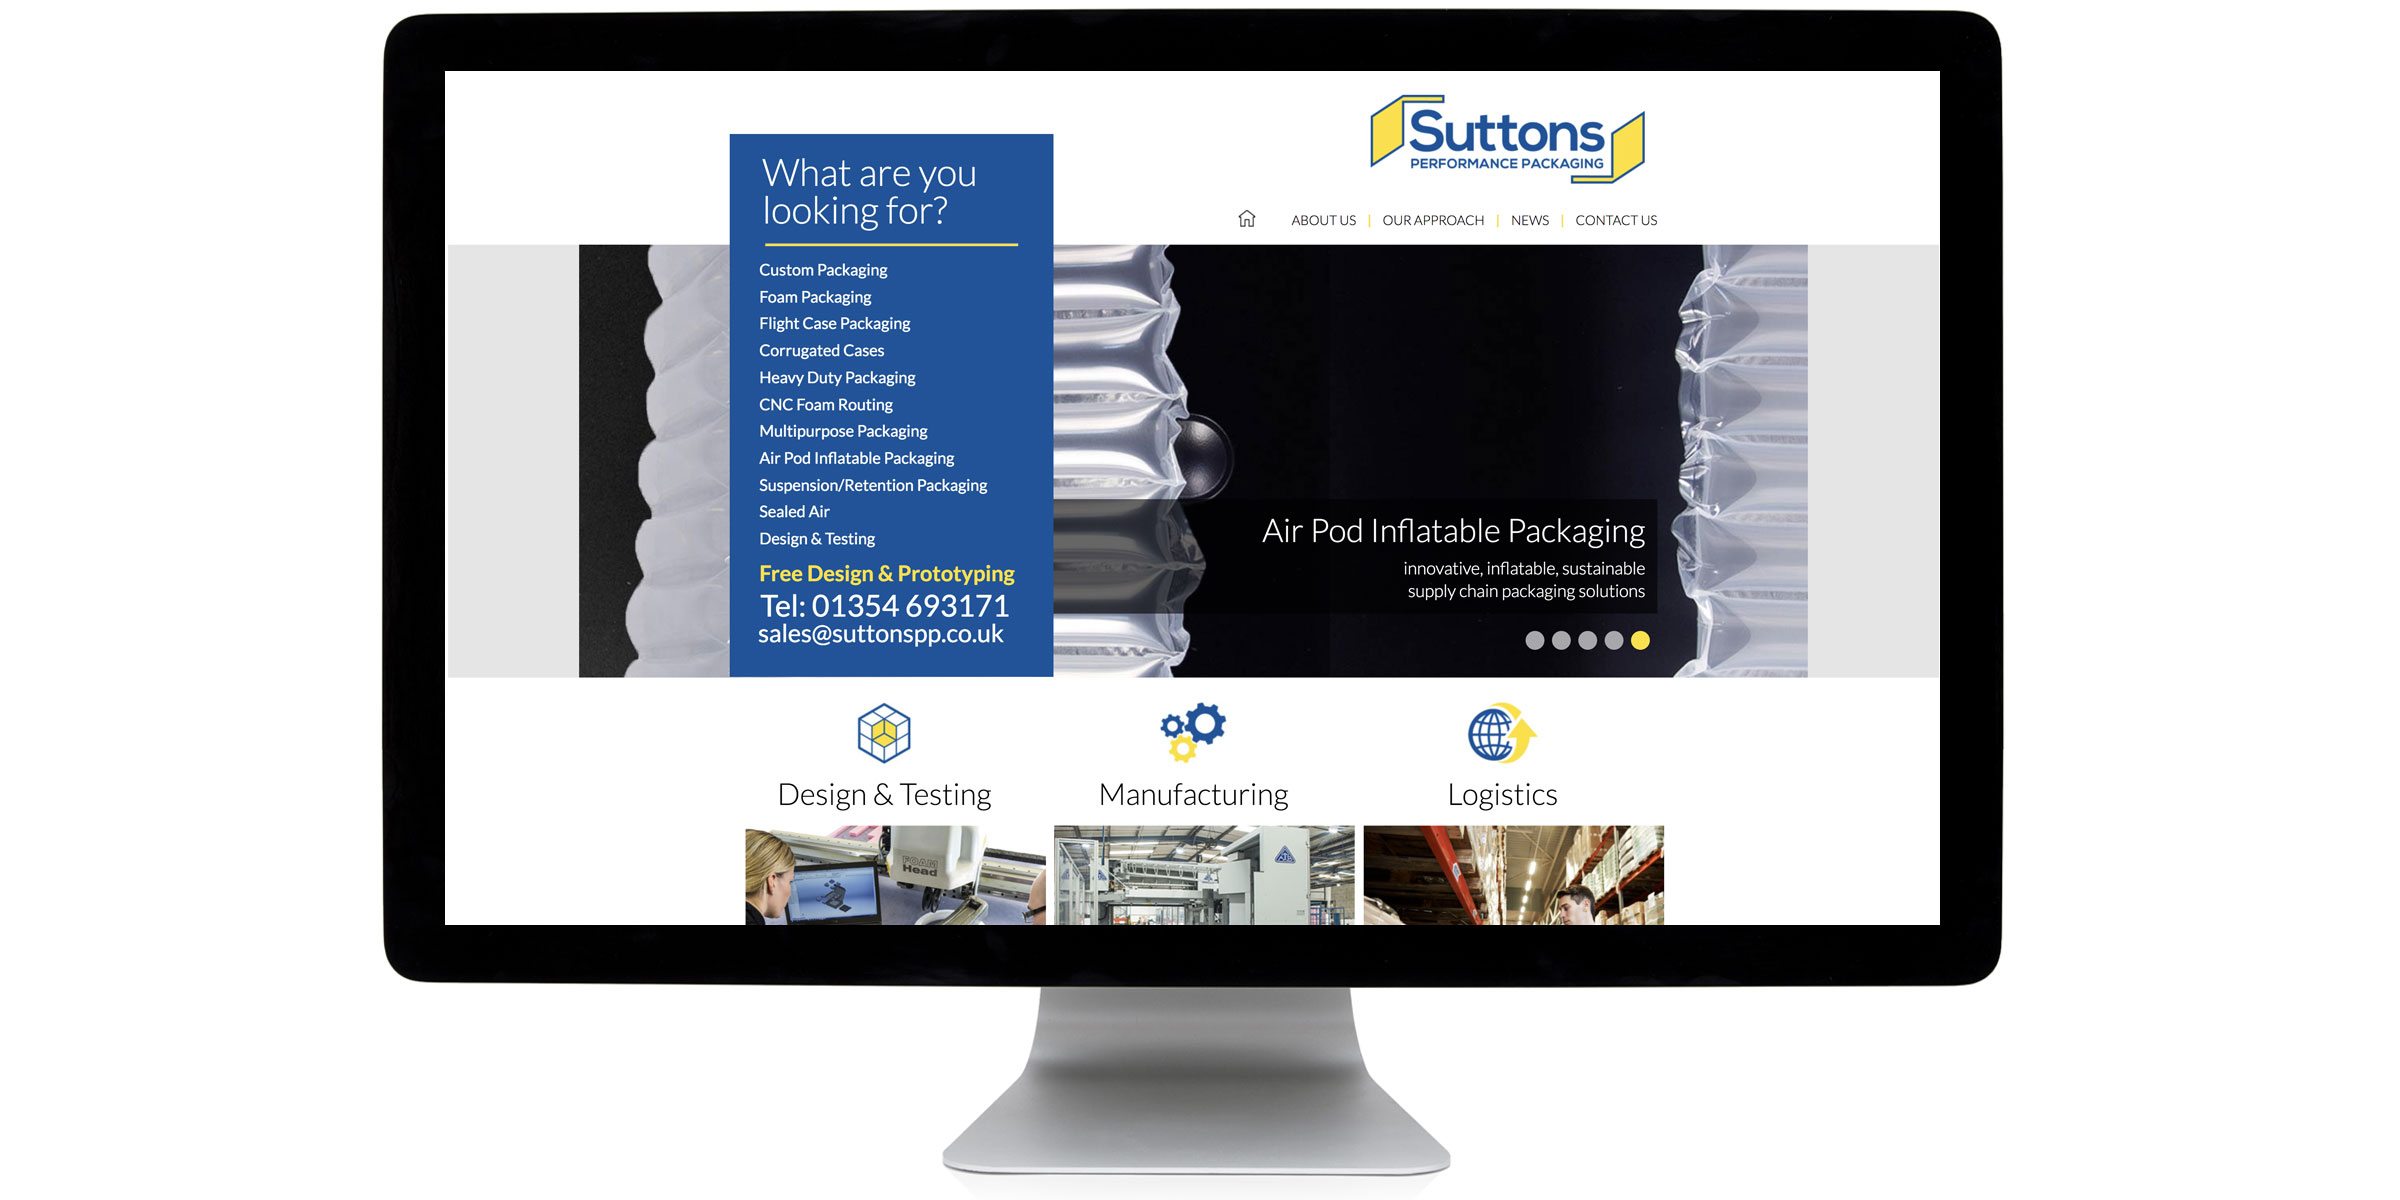 Suttons Performace Packaging Website